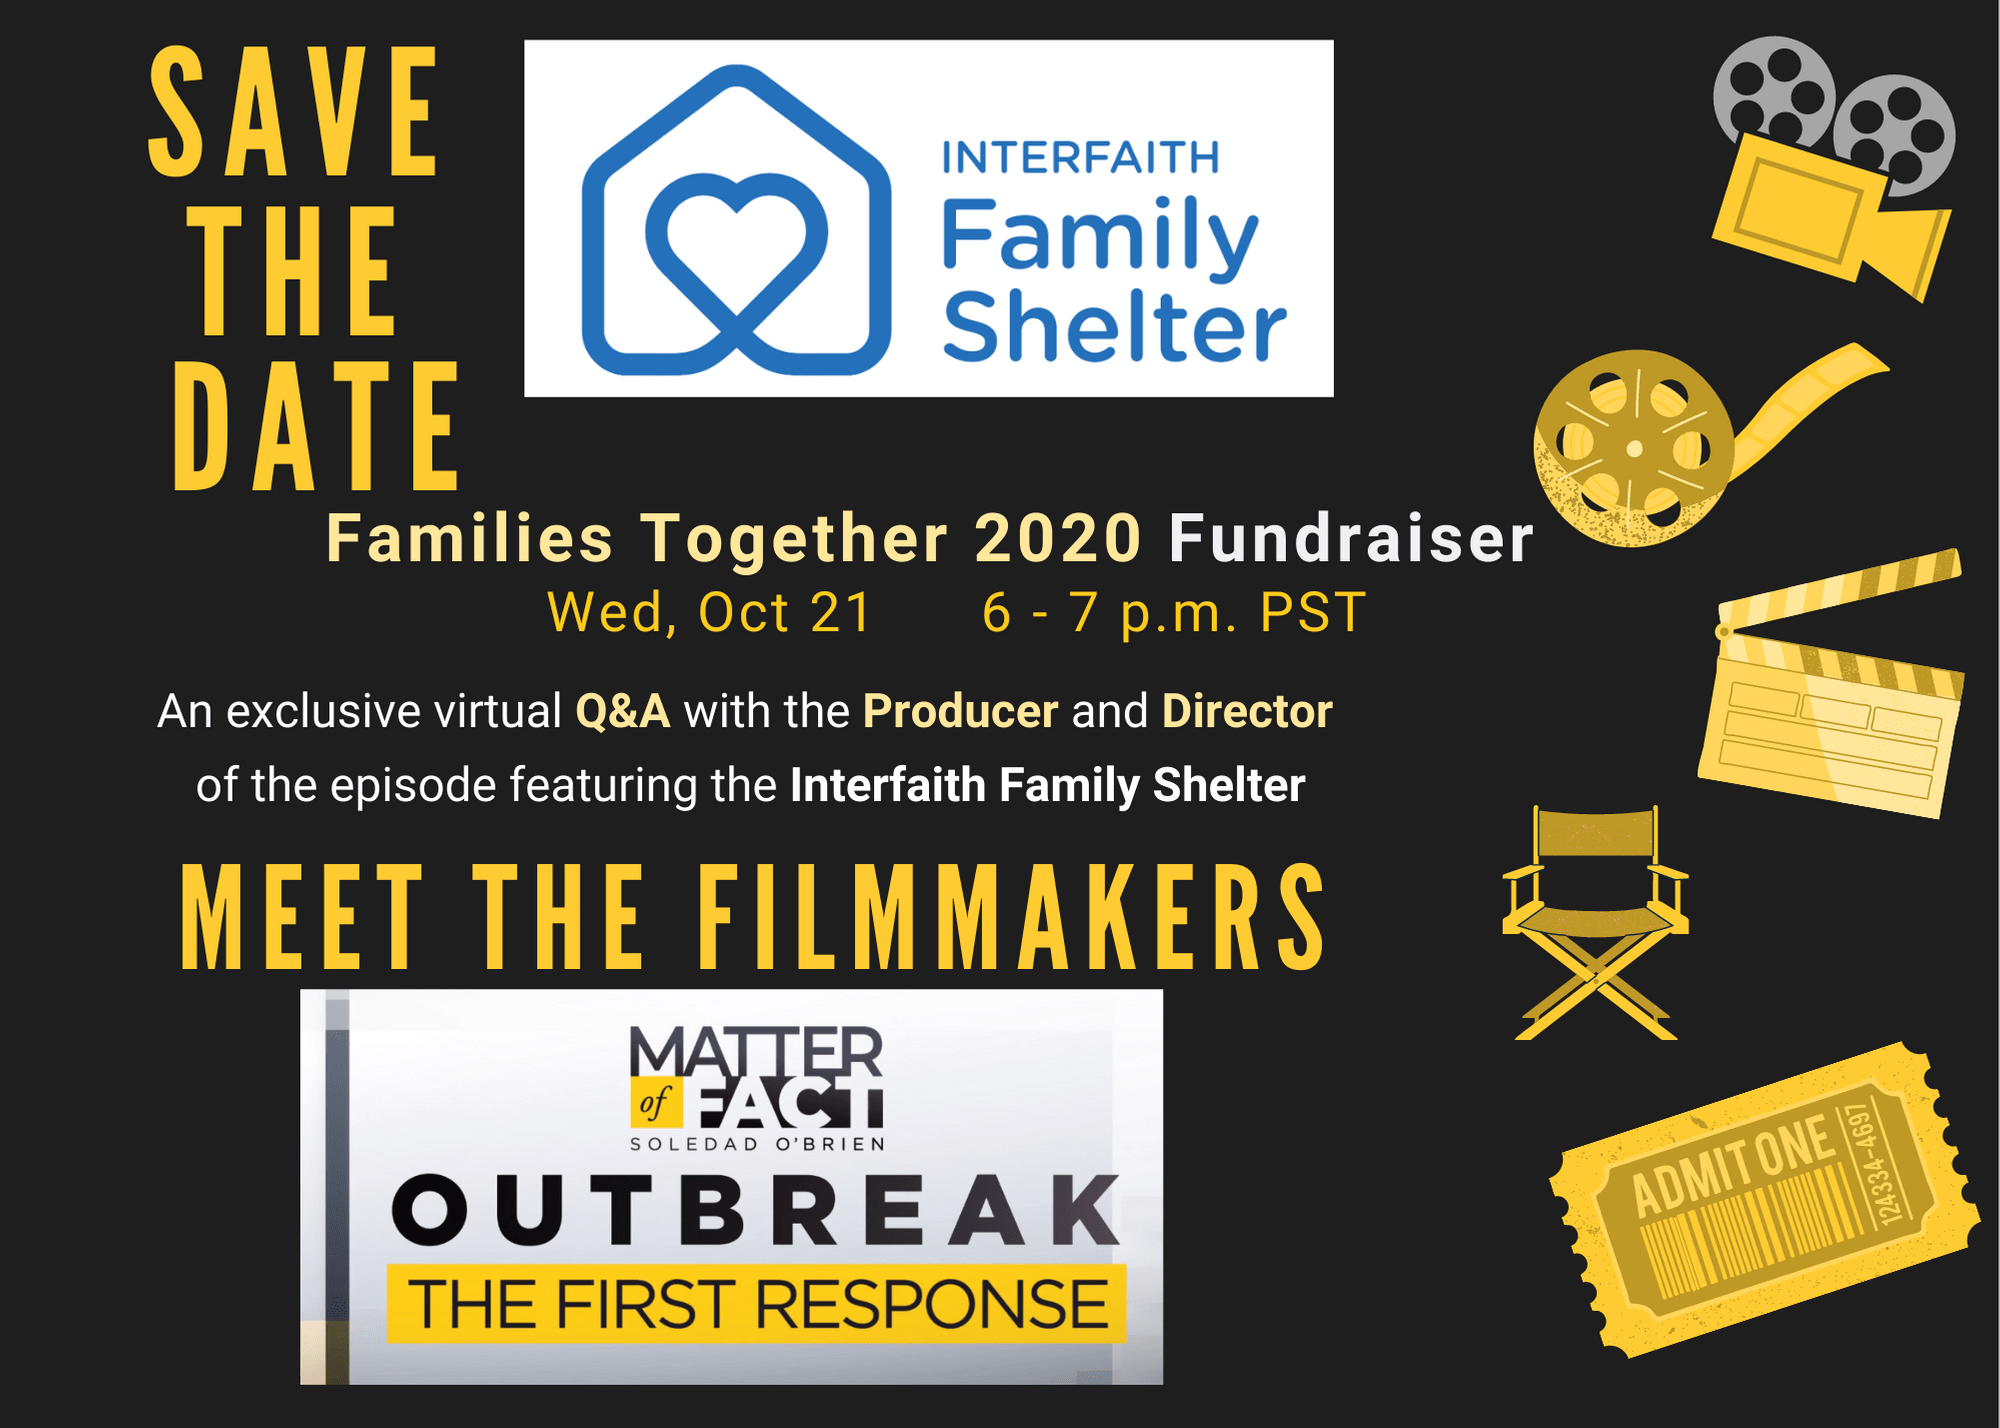 Families Together 2020 is online on 10/21